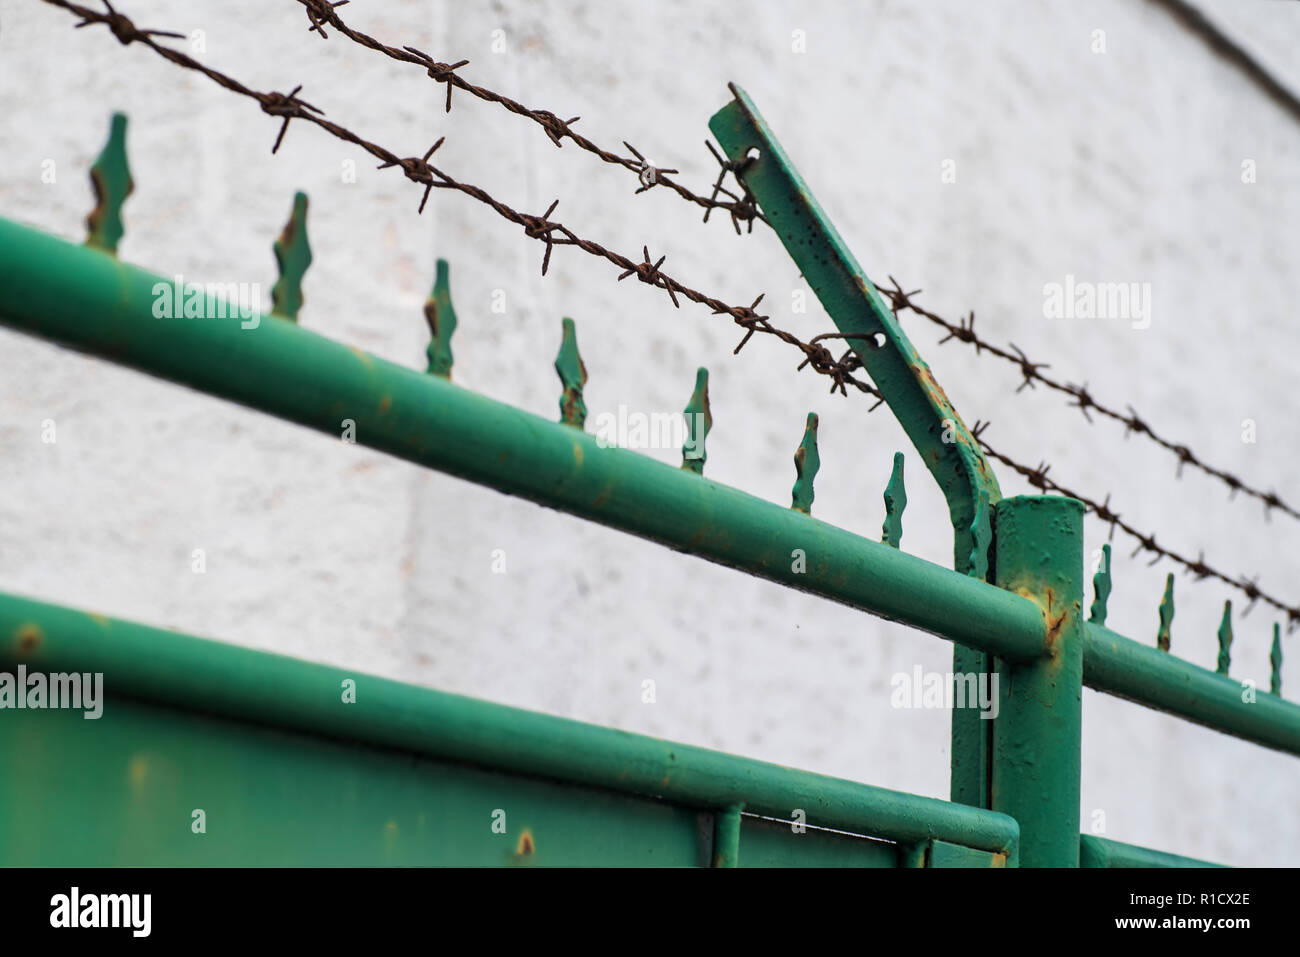 Metal fence with barbed wire, guarded object. Barbed wire on the fence. - Stock Image